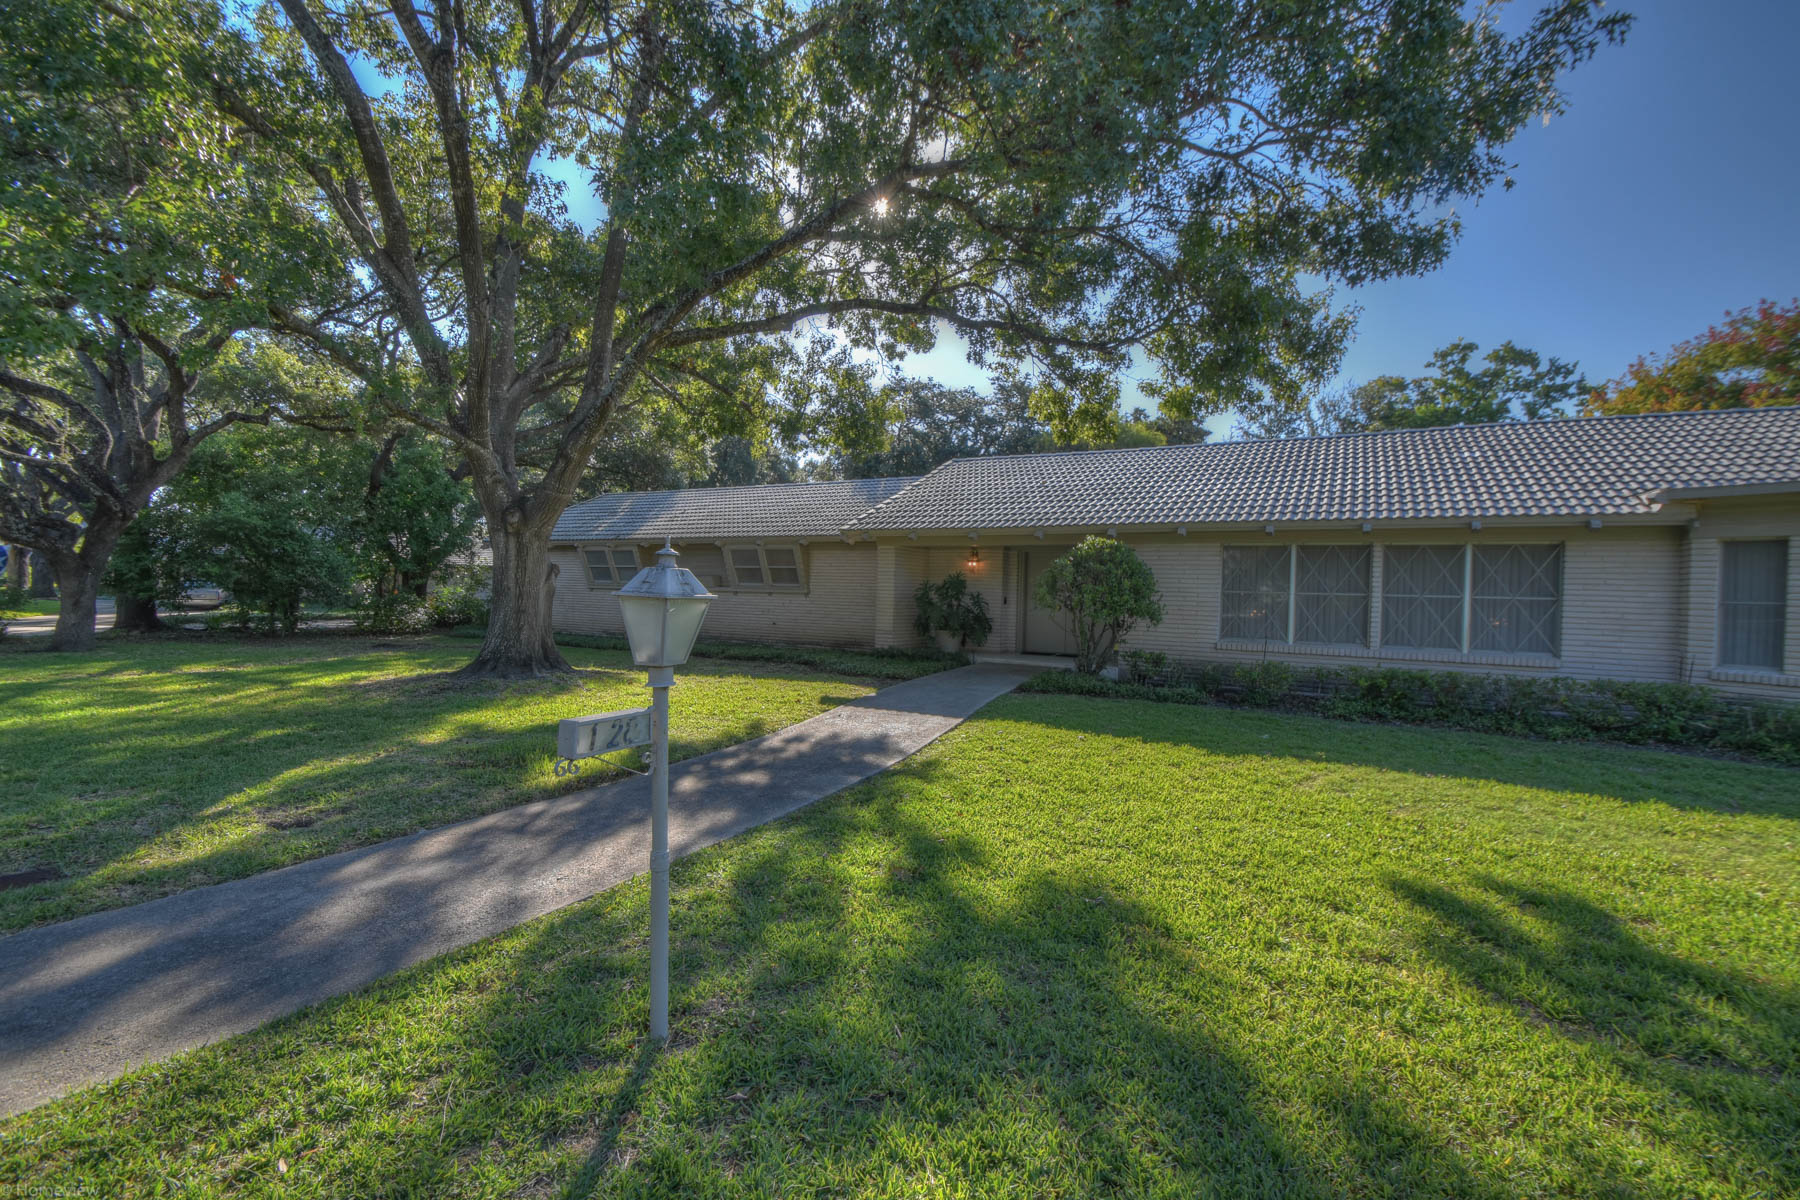 Single Family Home for Sale at Mid-Century Modern Home in Castle Hills 128 Lou-Jon Cir Castle Hills, San Antonio, Texas, 78213 United States